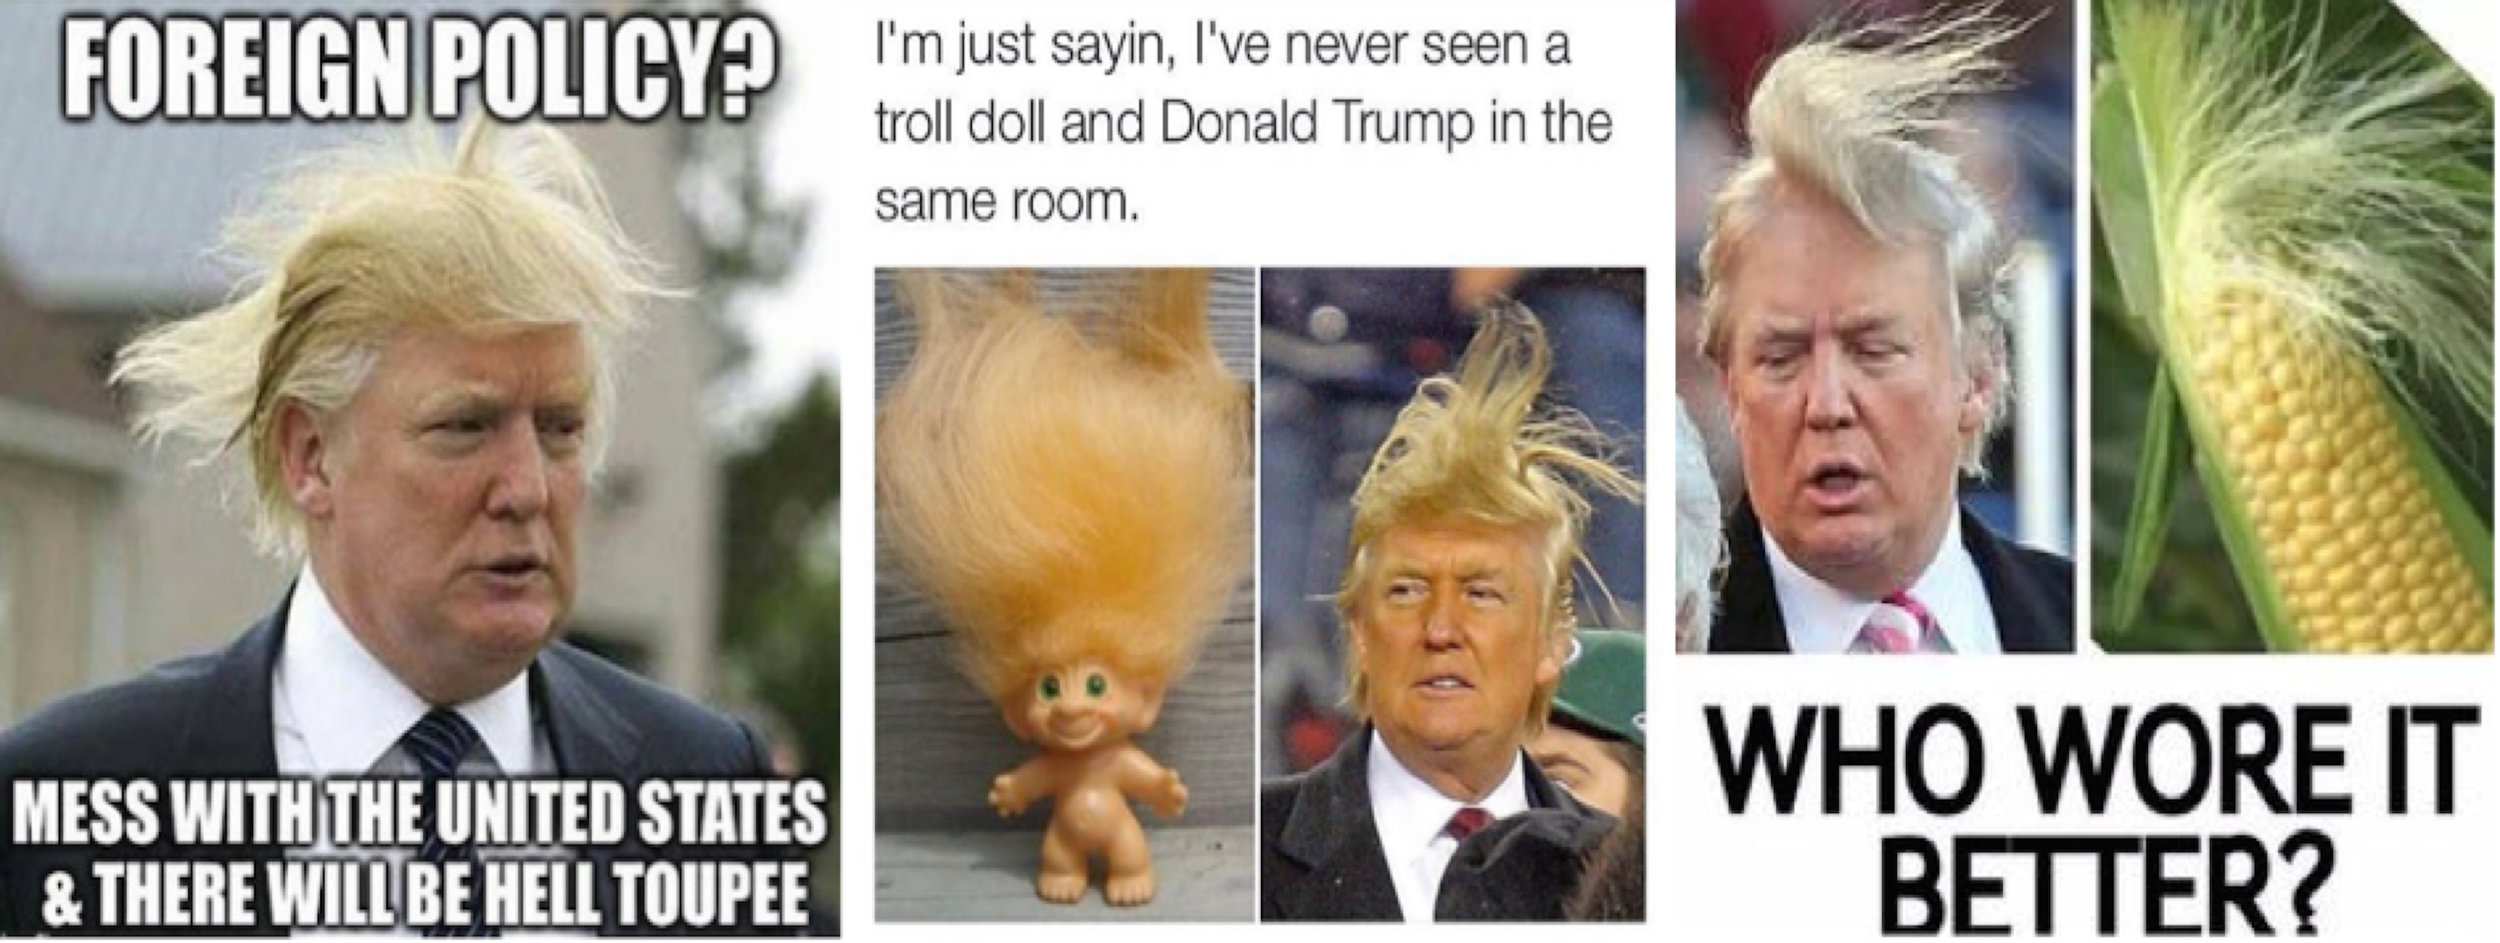 """Random memes. Trump """"enjoys"""" the rhetorical benefit of objectifying women (often in the most reductive sense: a quantitative scale of 1-10). Game in: Trump himself is a man afraid of the aging process, a paltry old man, to recall Yeats, afraid of his own embodiment relative to his own standard of measure. A narcissistic, paranoiac despot, indeed."""